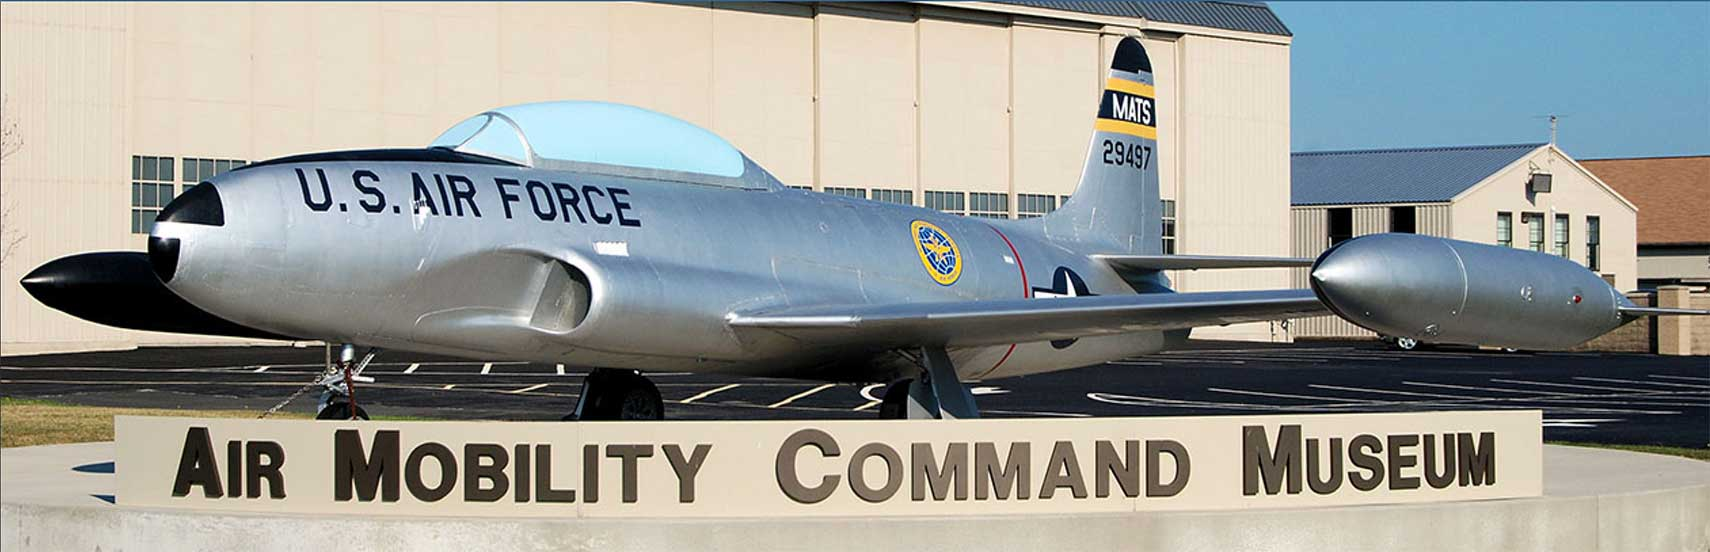 Air Mobility Command Museum, Dover, Delaware